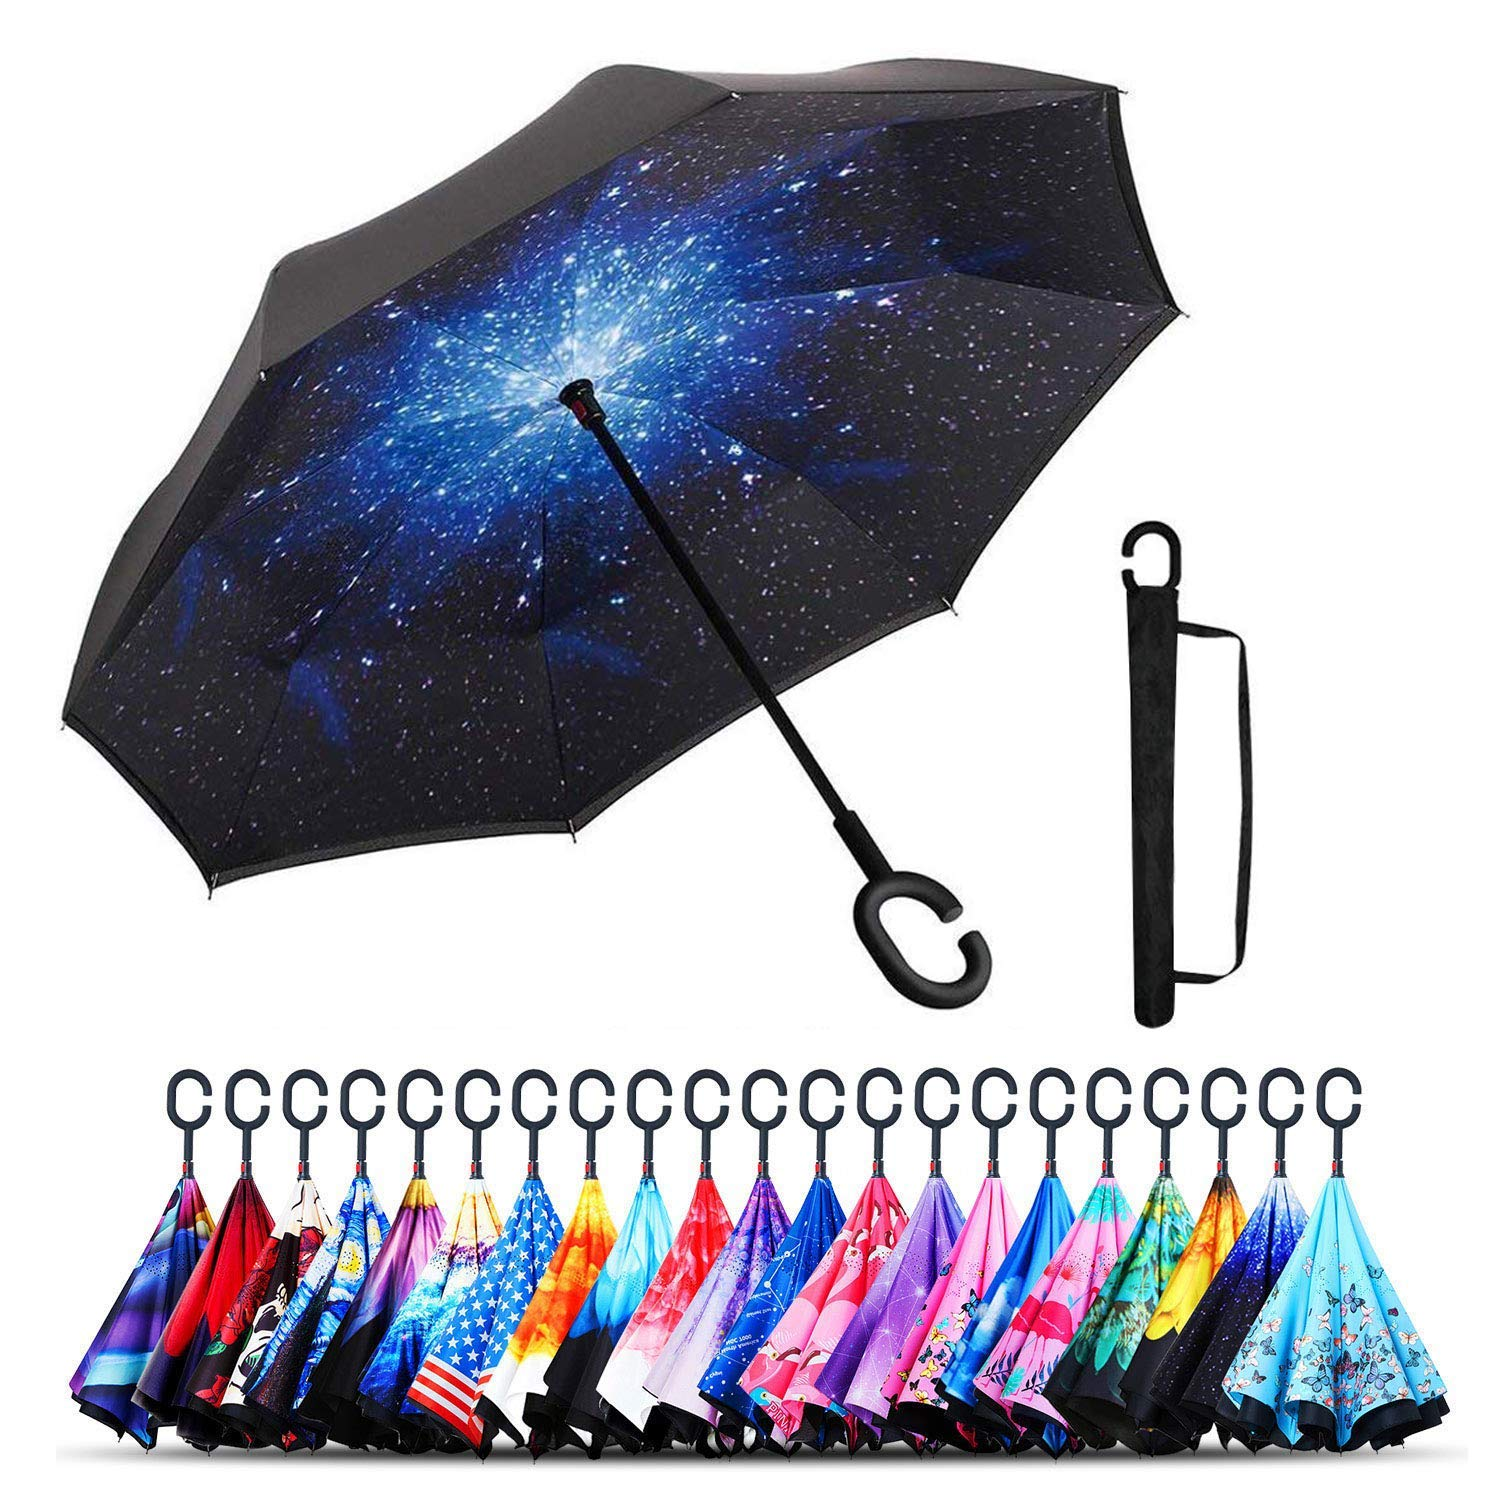 Monstleo Inverted Umbrella,Double Layer Reverse Umbrella for Car and Outdoor Use by, Windproof UV Protection Big Straight Umbrella with C-Shaped Handle and Carrying Bag (Galaxy)